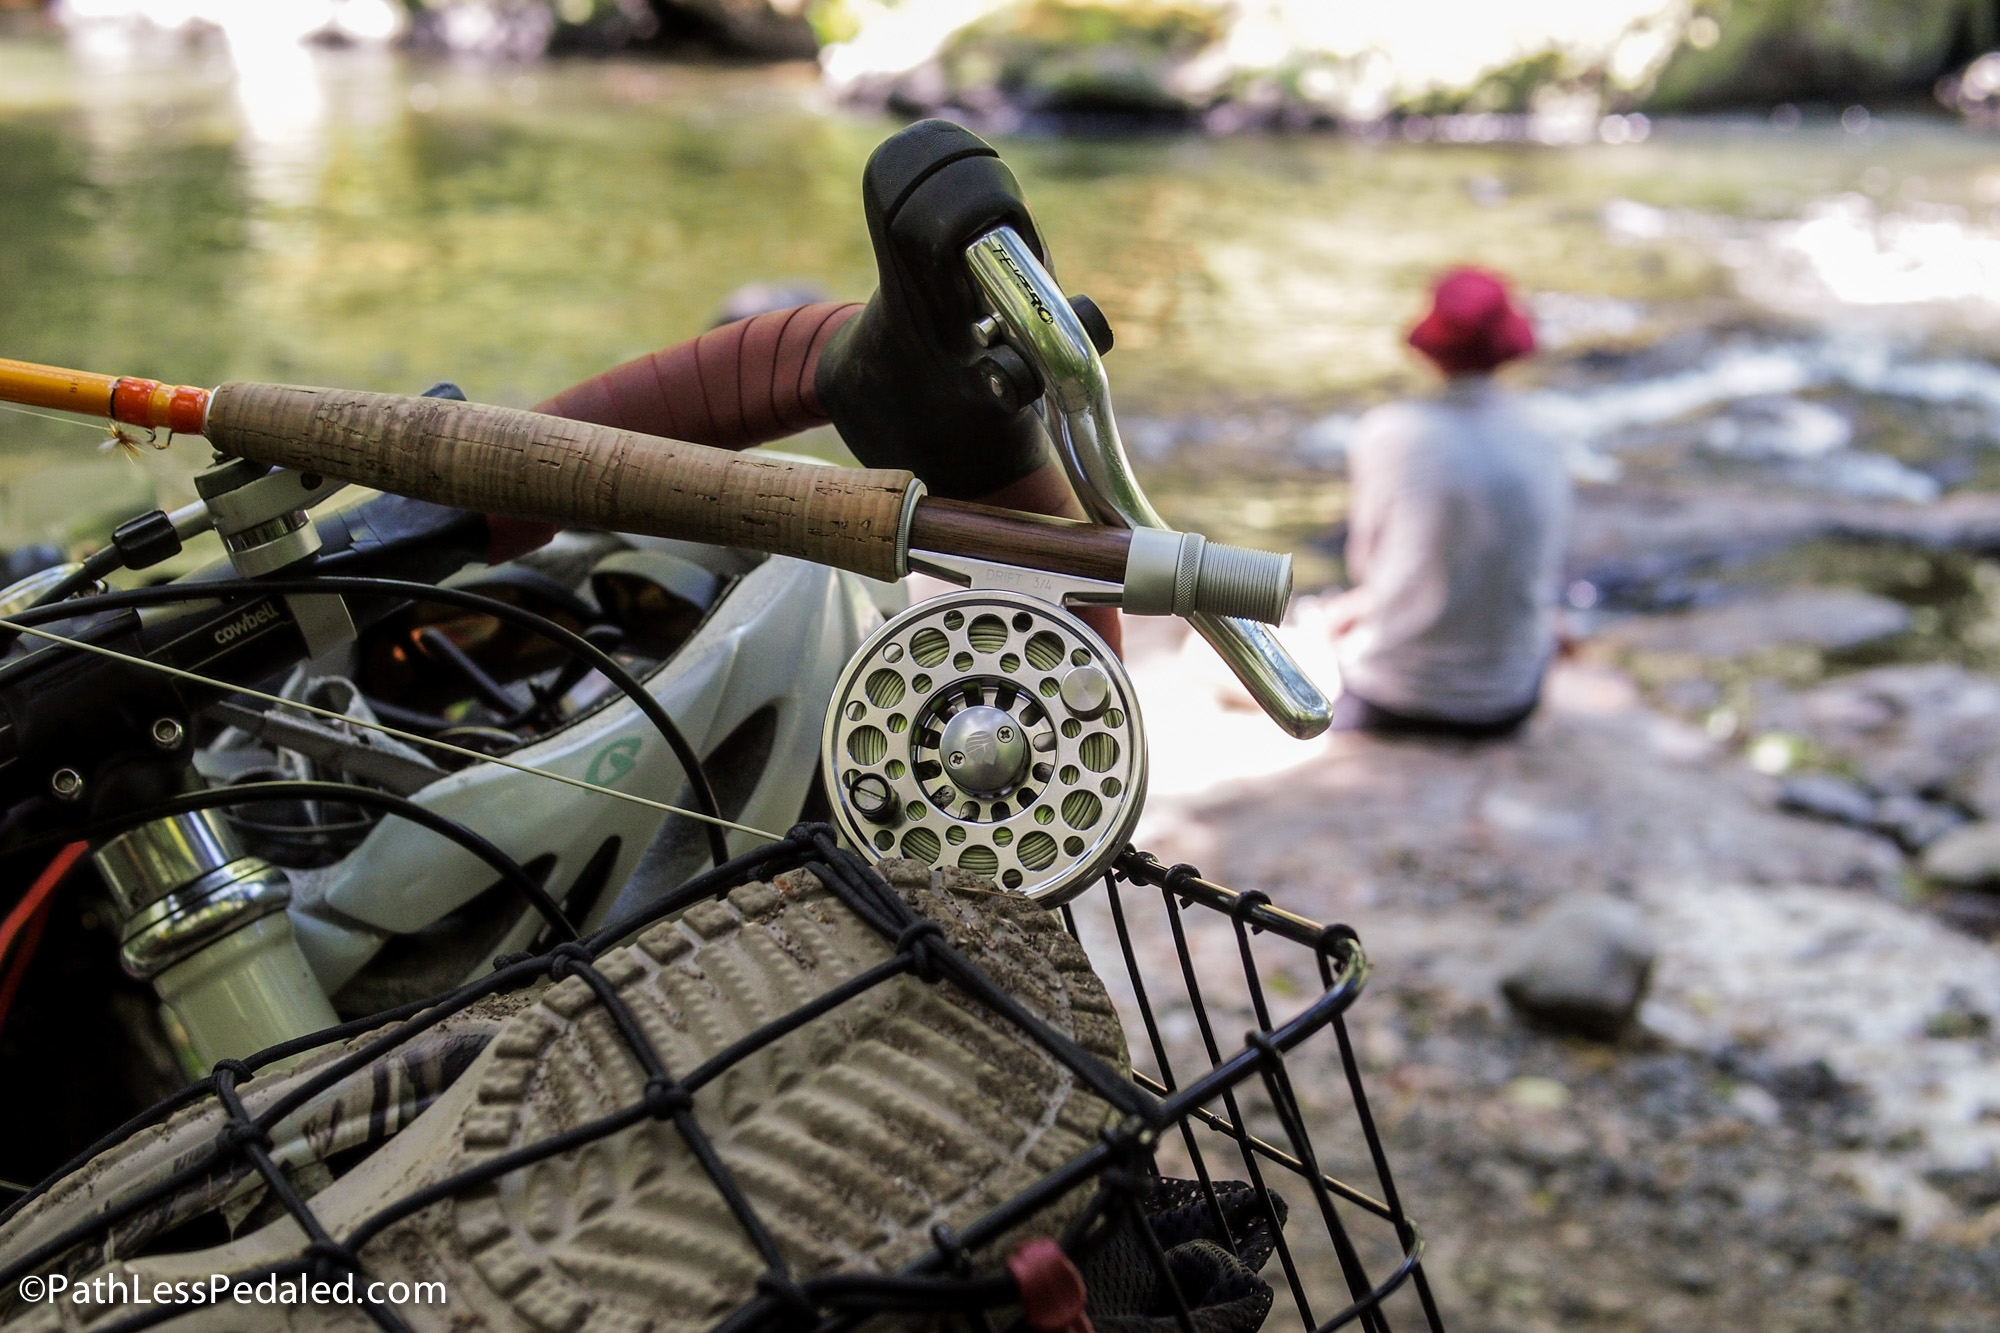 Fly Fishing by Bike | Hipcamp Journal - Stories for Campers